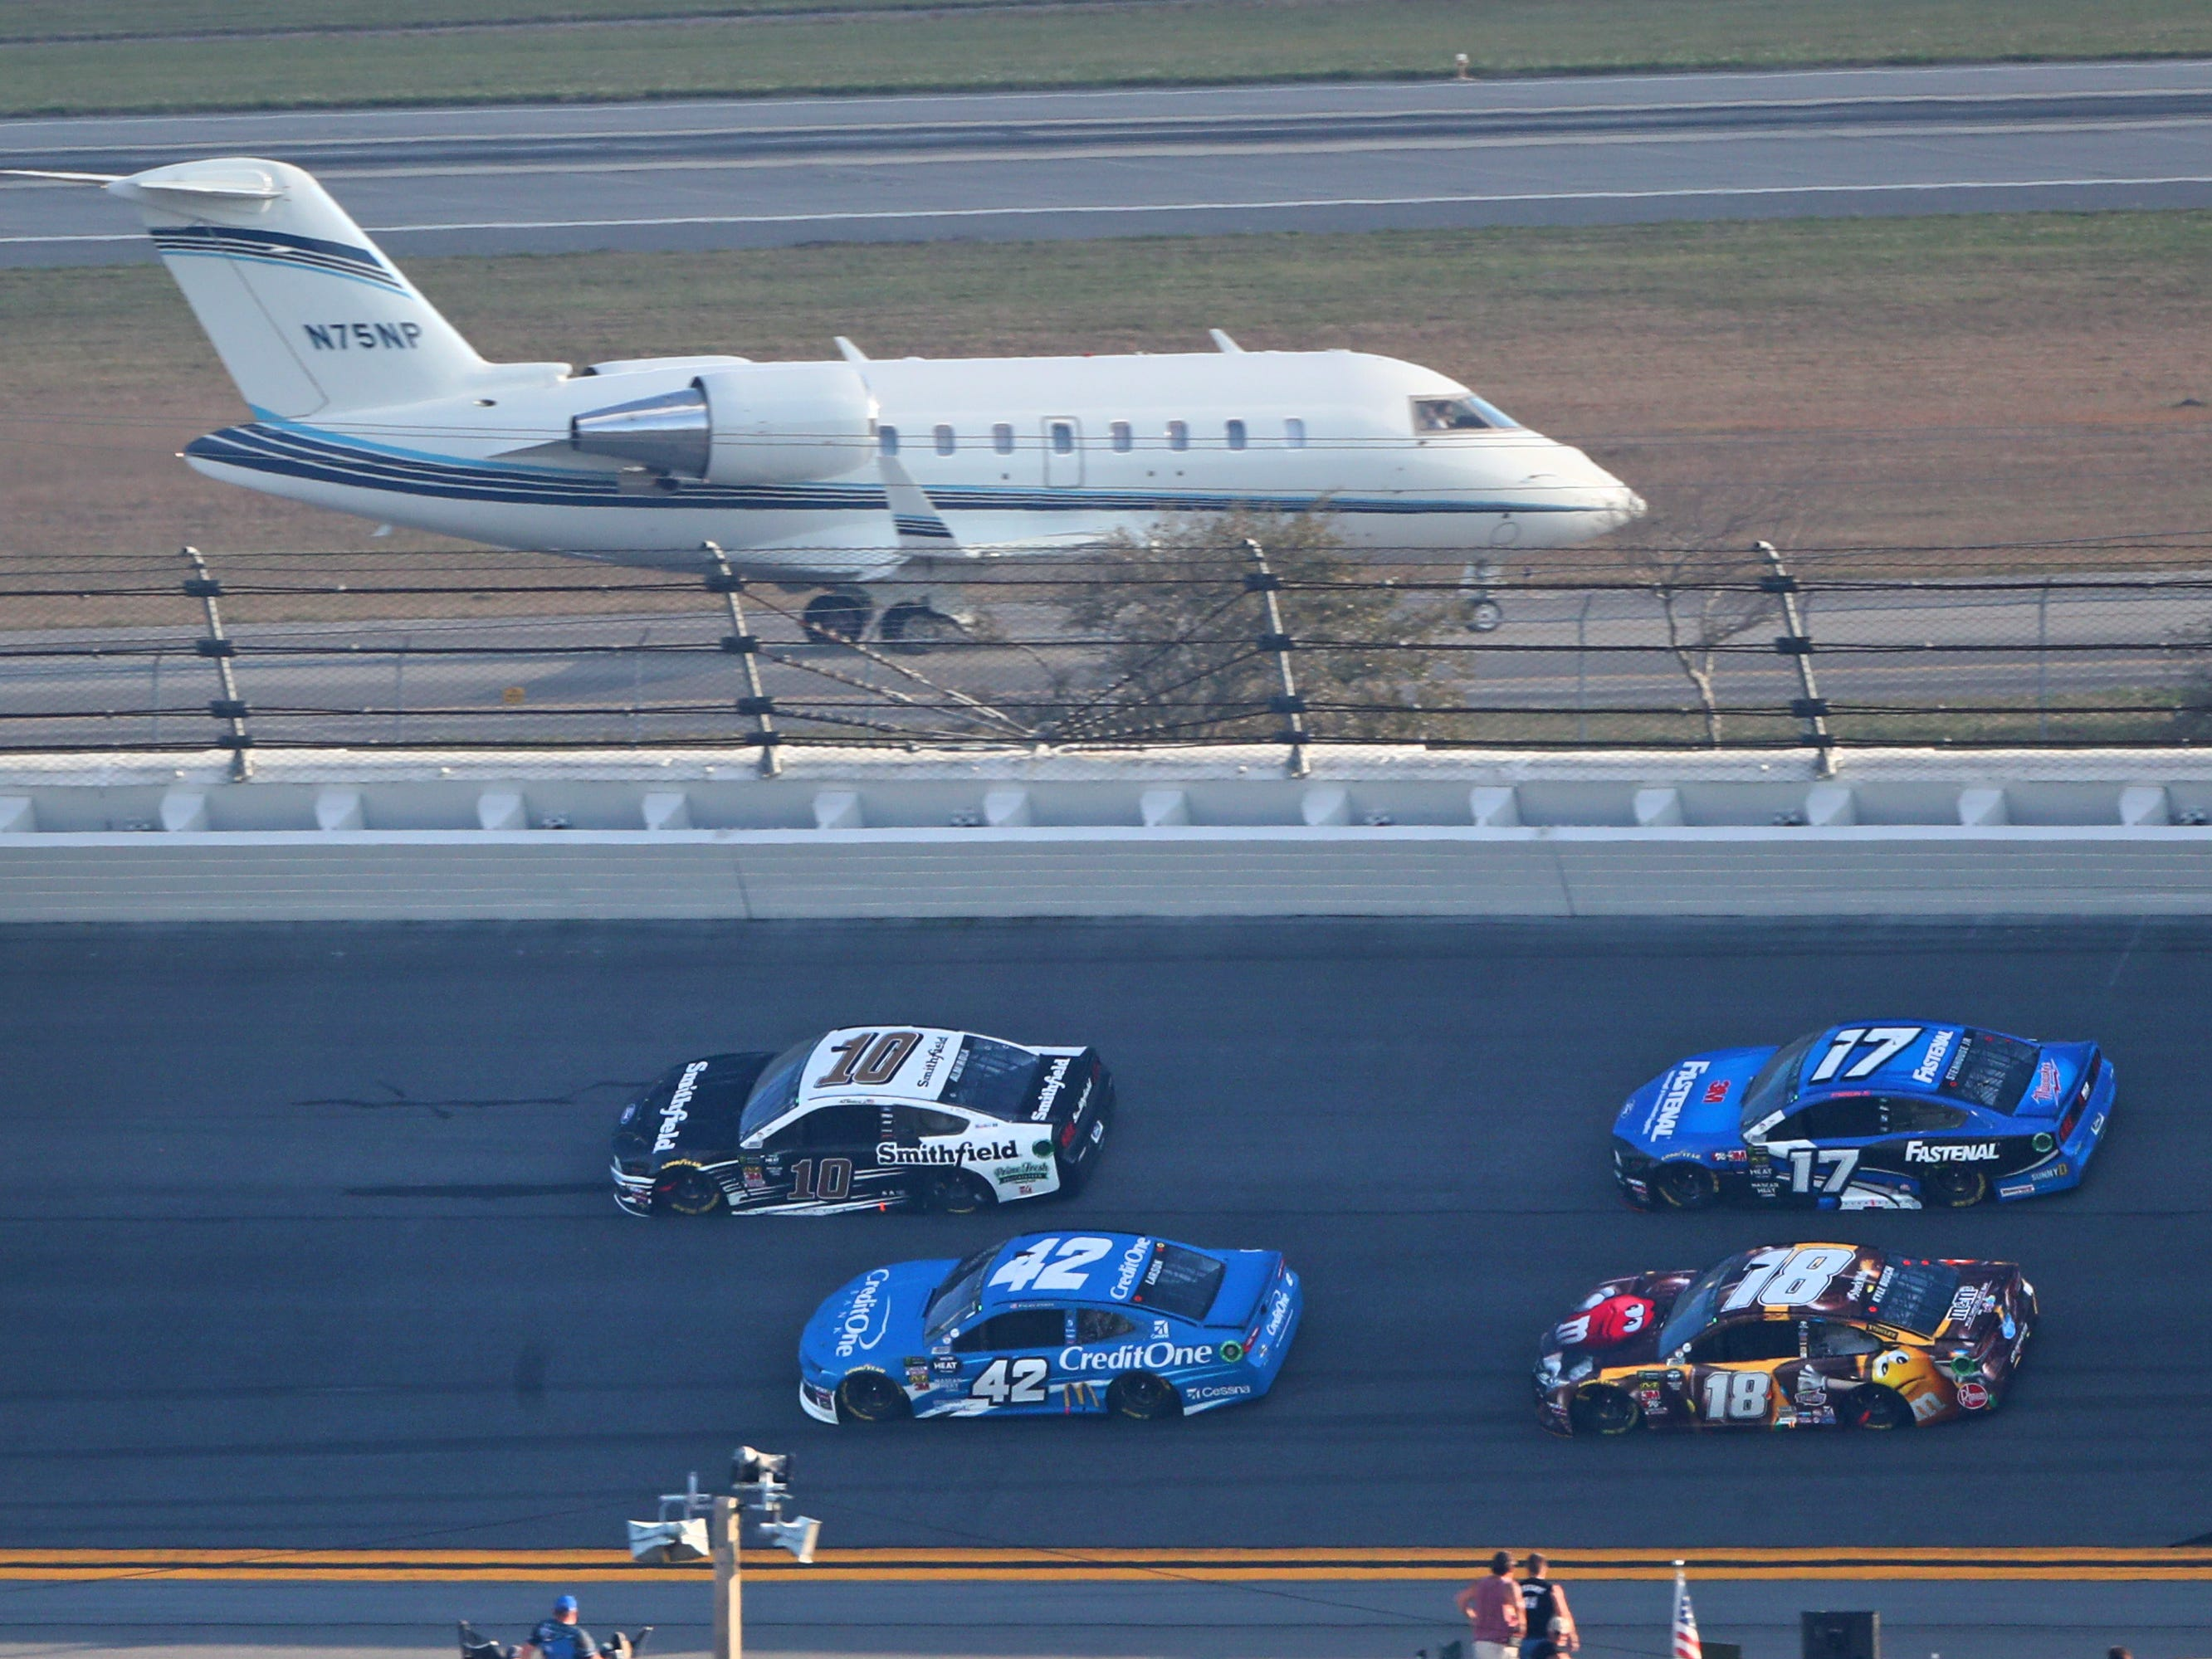 NASCAR Cup Series driver Aric Almirola (10) and Kyle Larson (42) lead Ricky Stenhouse Jr (17) and Kyle Busch (18) as a jet plane taxis at nearby airport during the Daytona 500 at Daytona International Speedway.